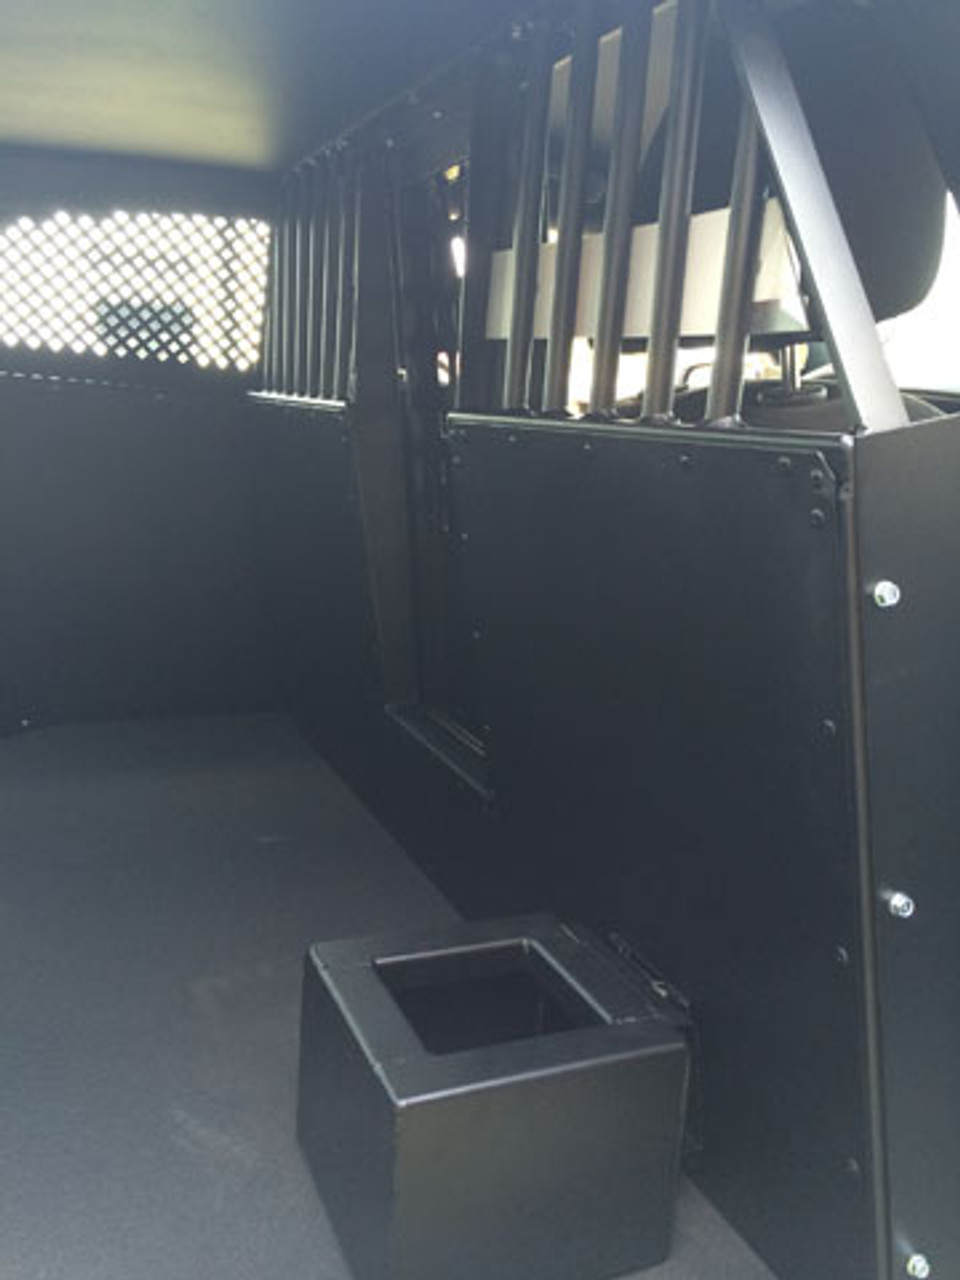 American Aluminum Dodge Charger EZ Rider K9 Police Car Dog Kennel Transport Insert System and Cargo Containment Unit, Black or Aluminum Finish